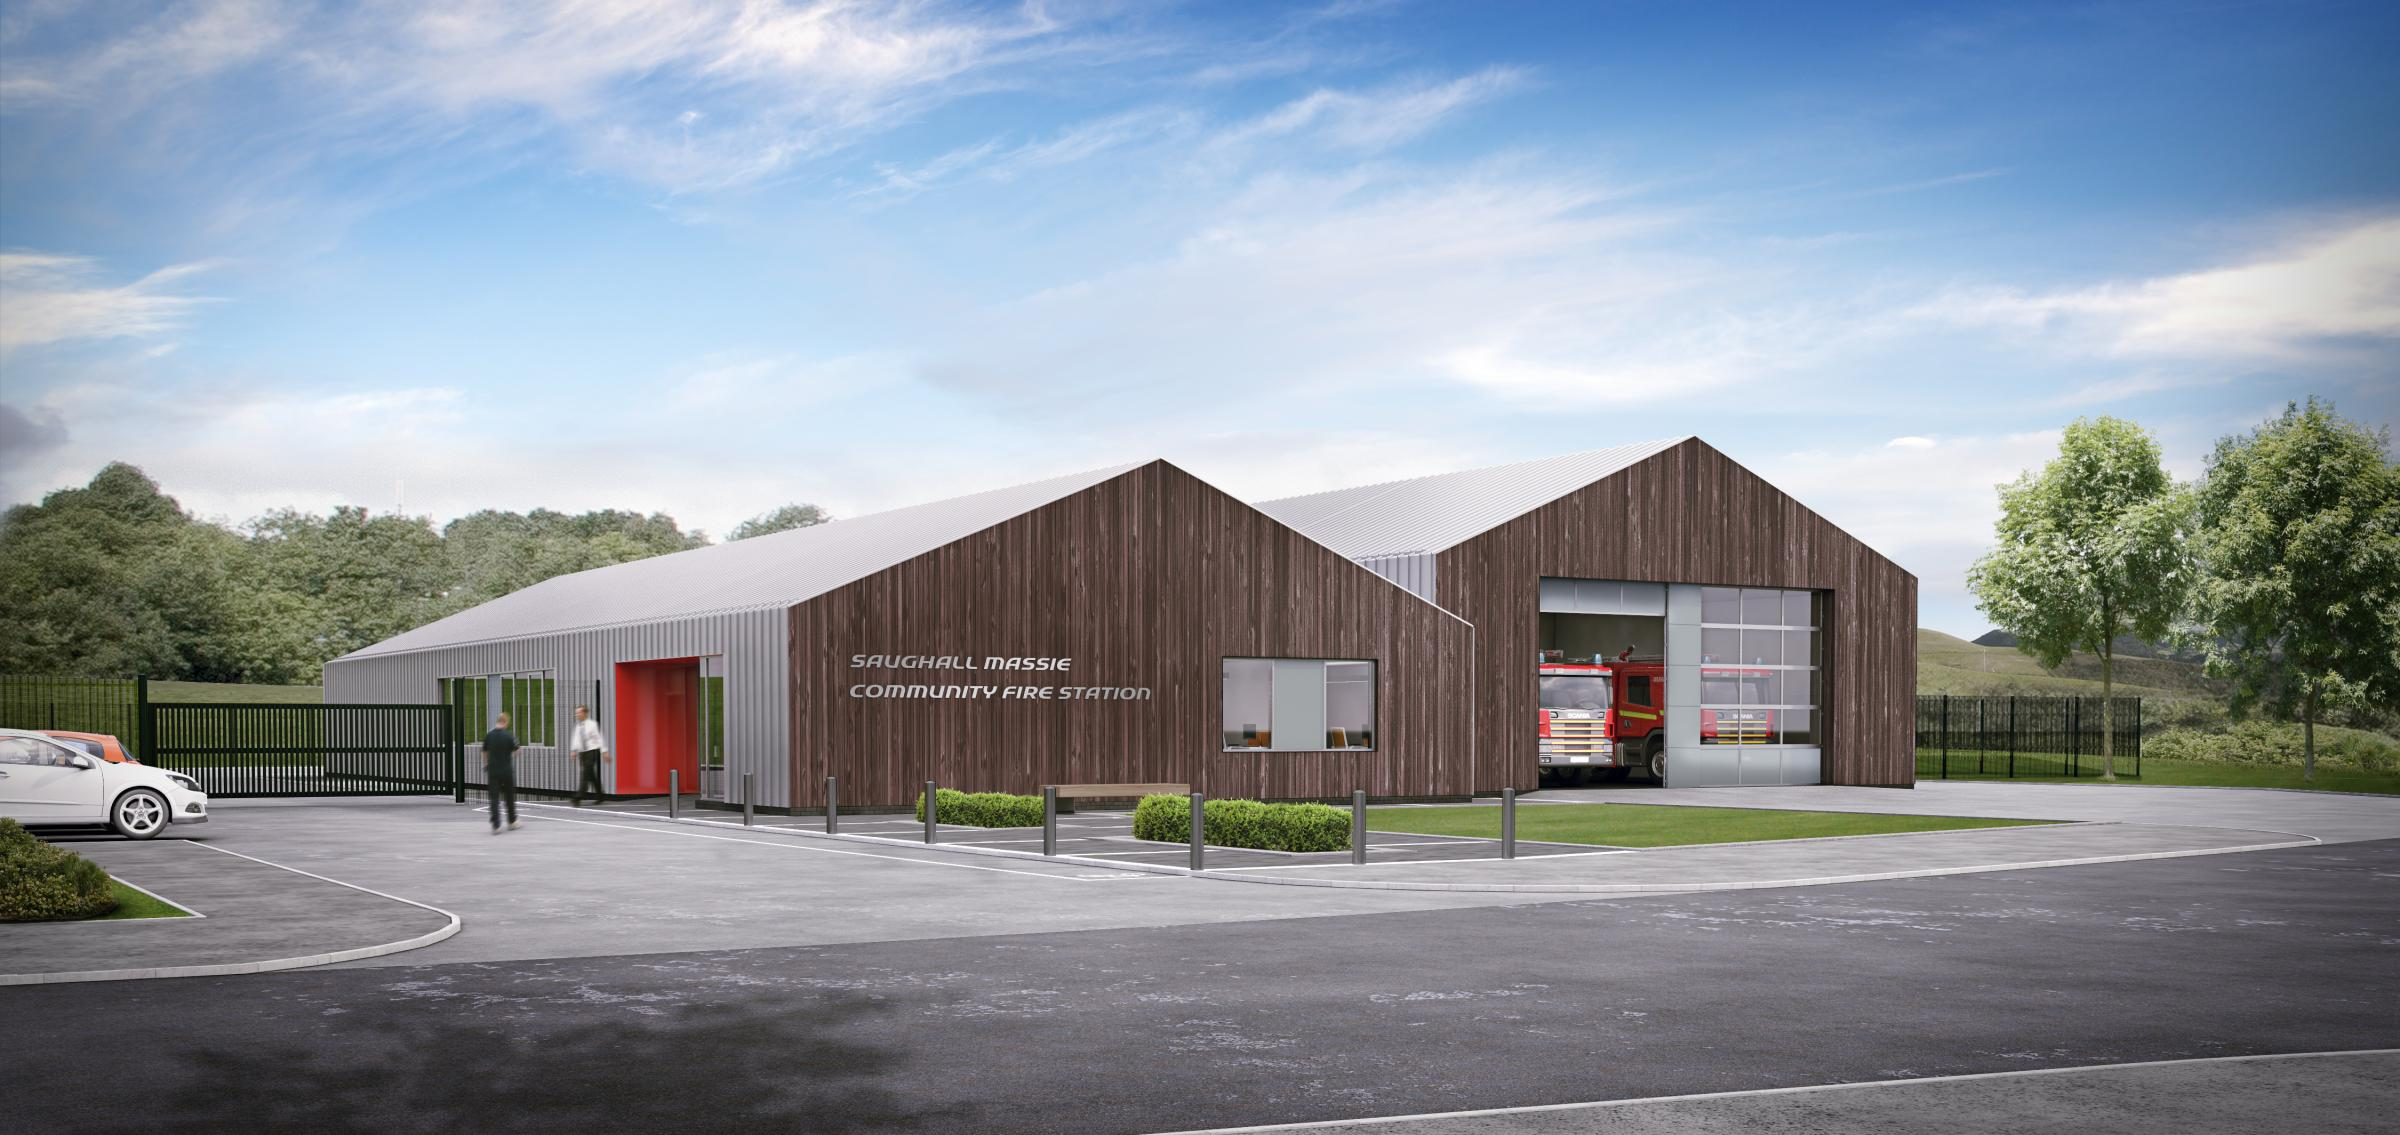 How the new fire station at Saughall Massie would look